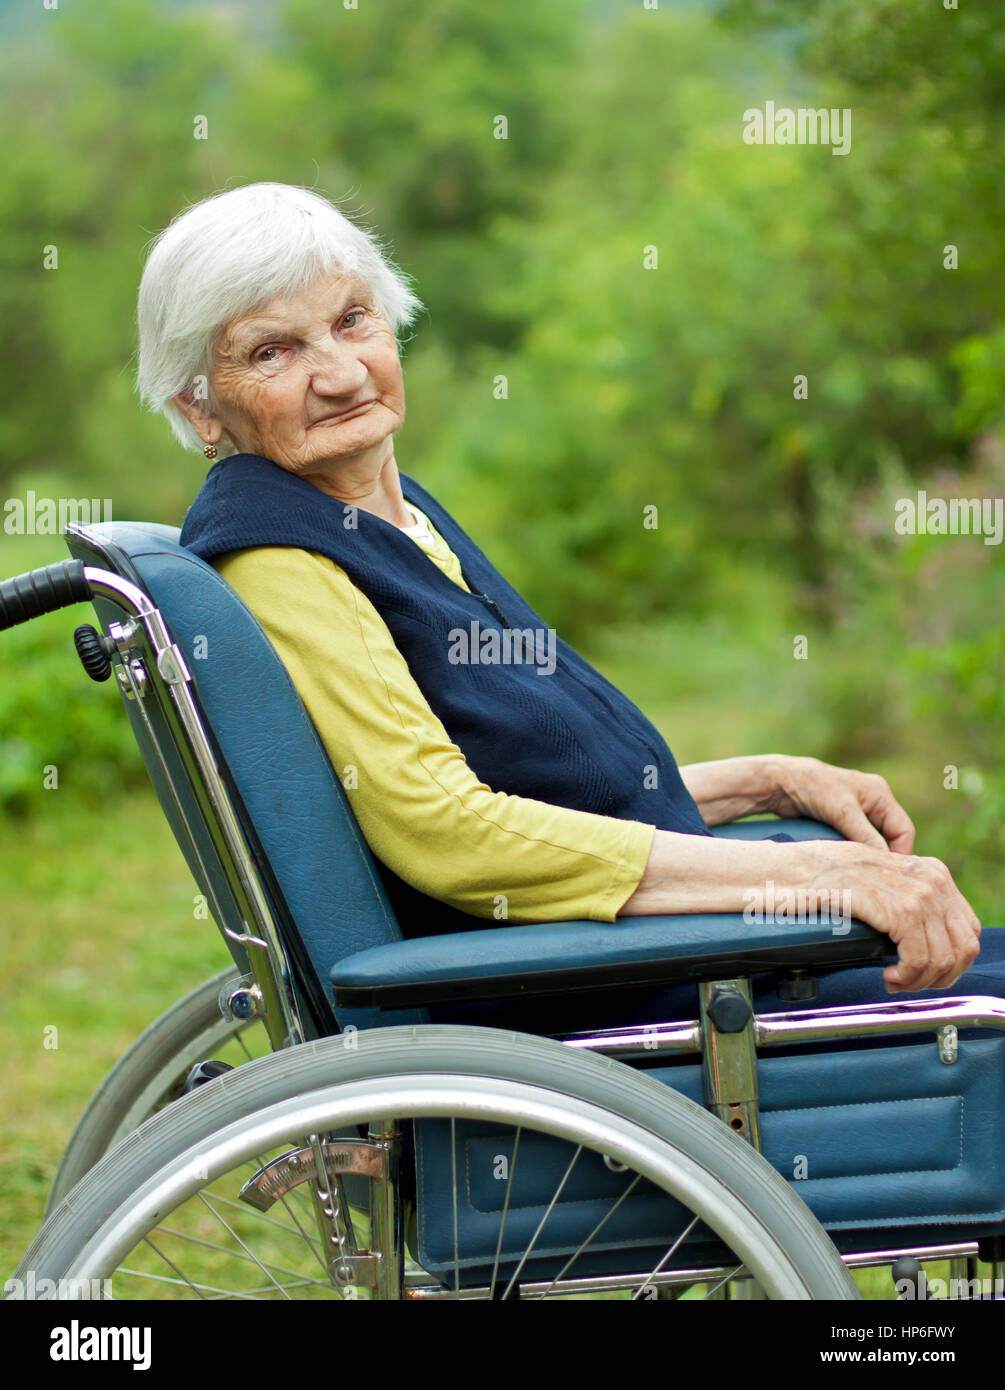 Handicapped elderly woman sitting in a wheelchair - Stock Image